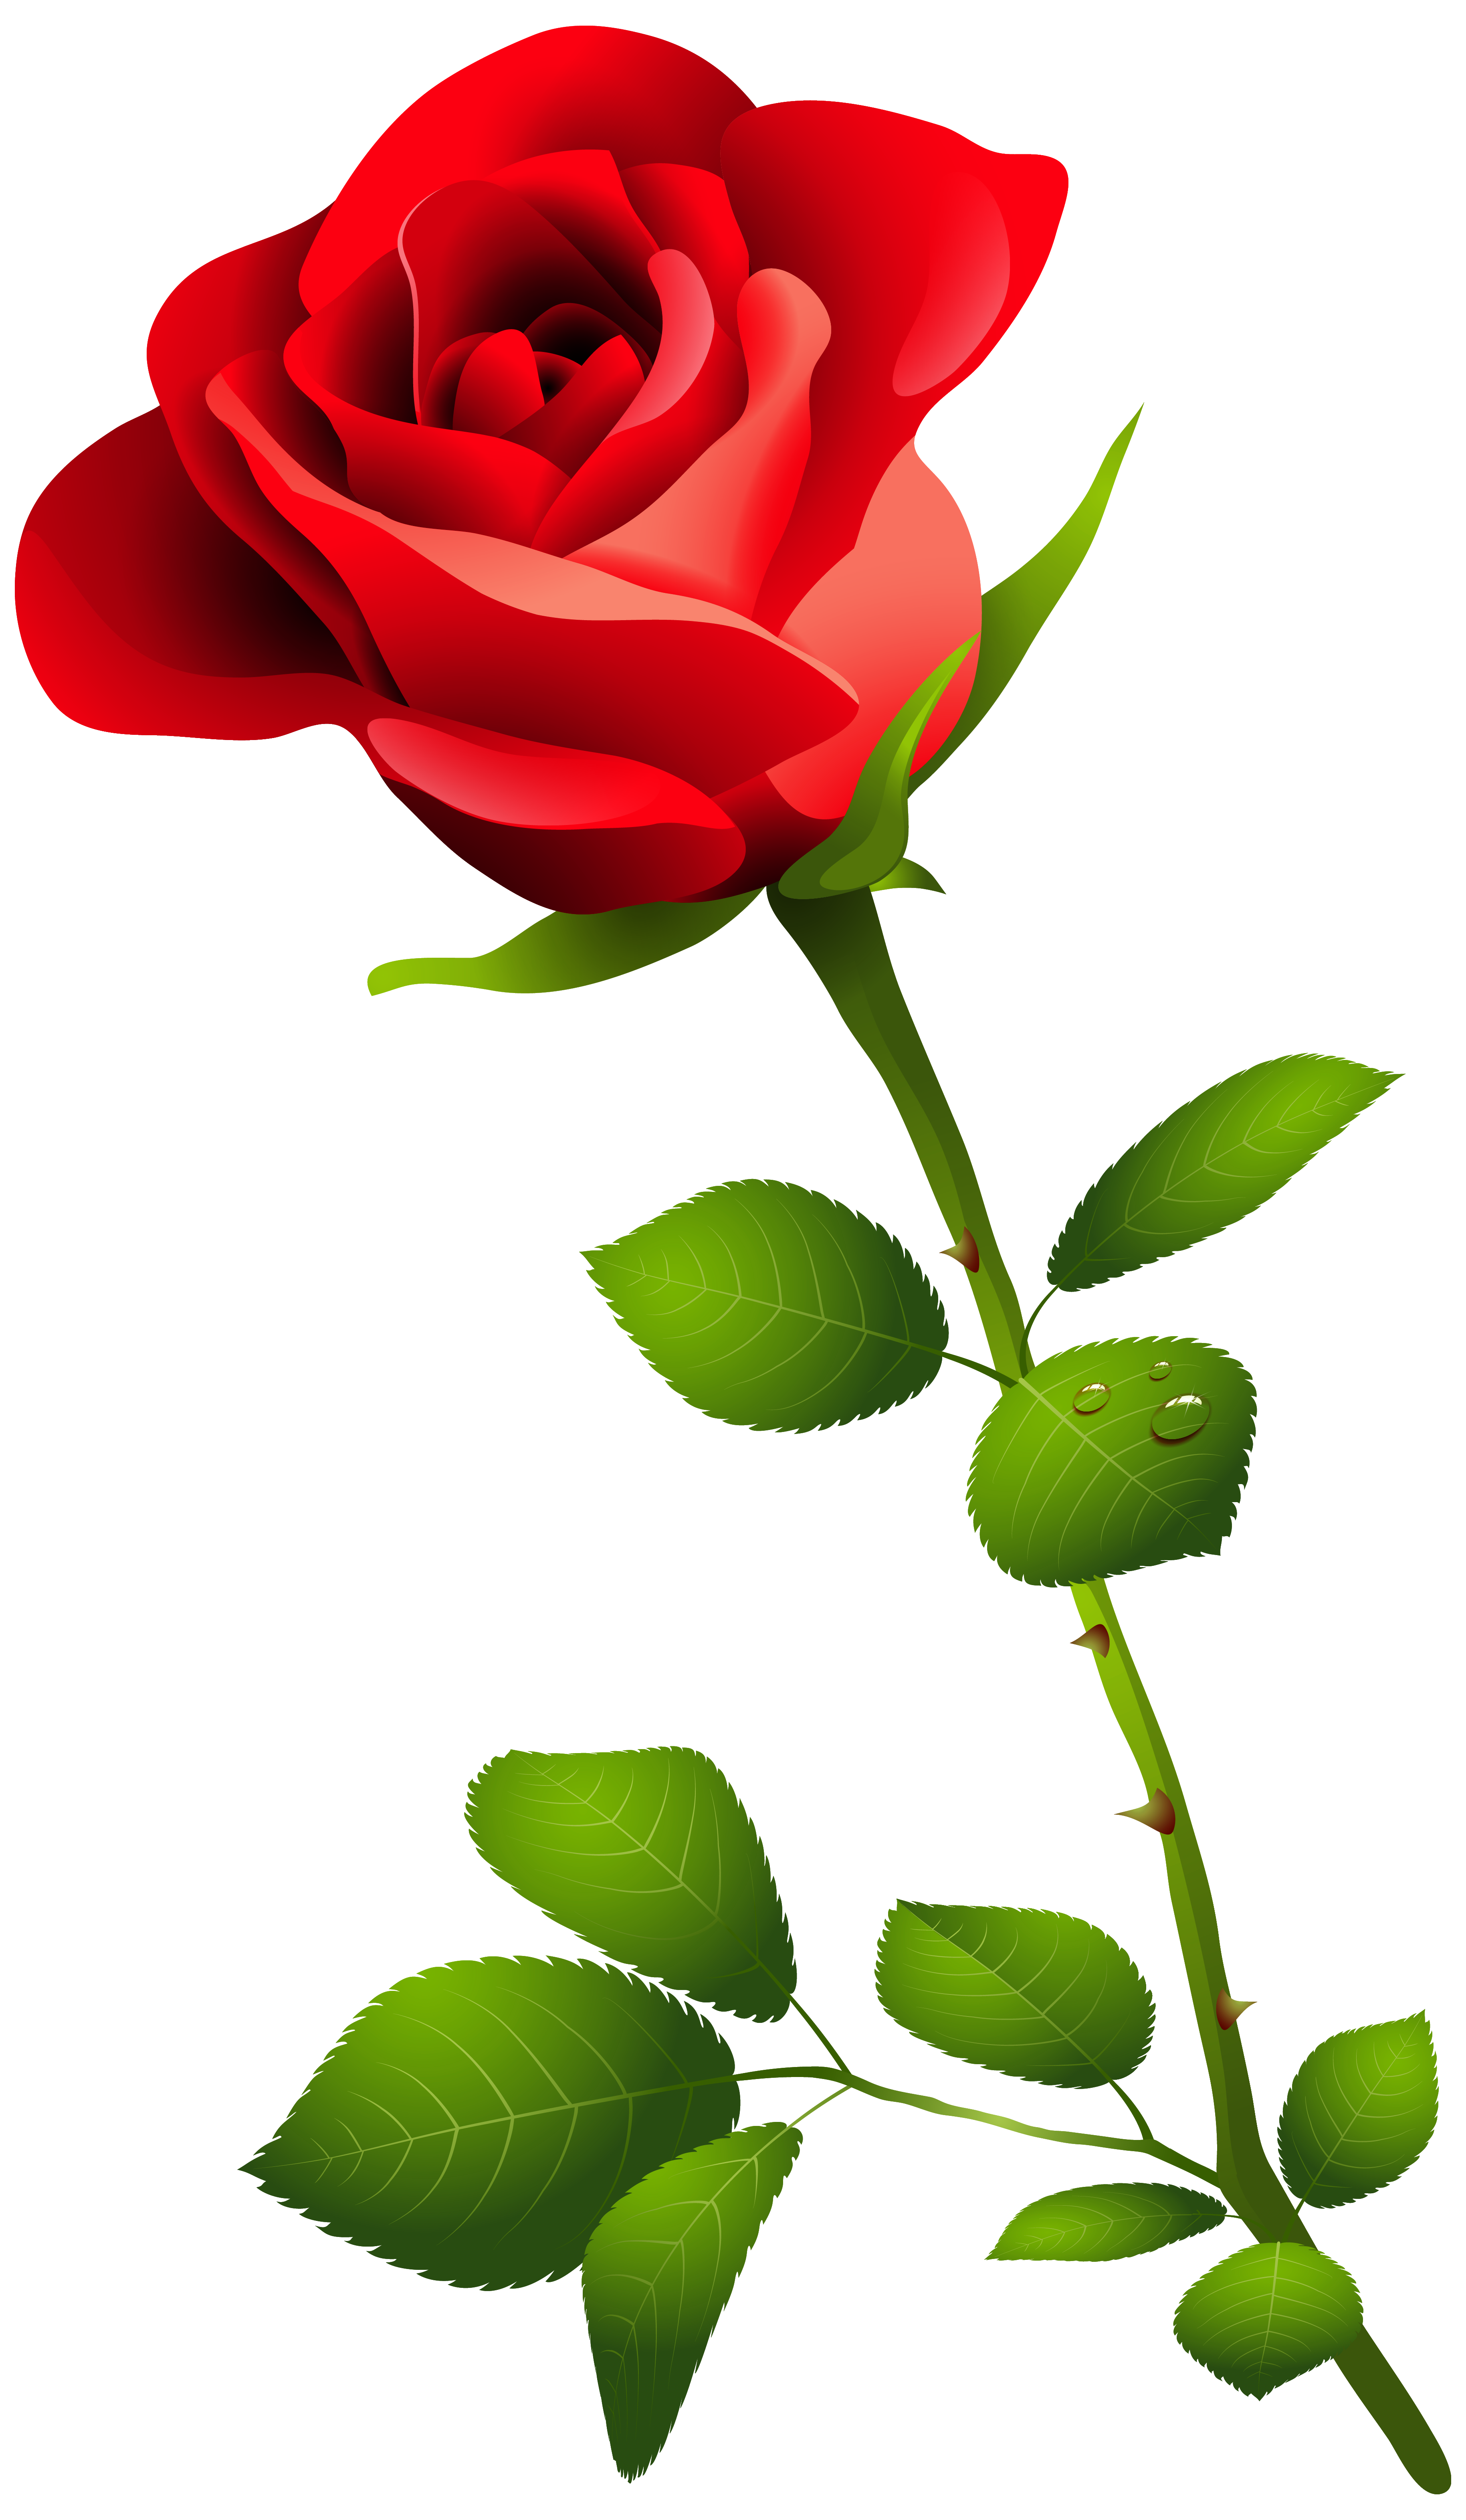 3658x6286 Red Rose With Stem Png Clipart Image Transparent Free Download